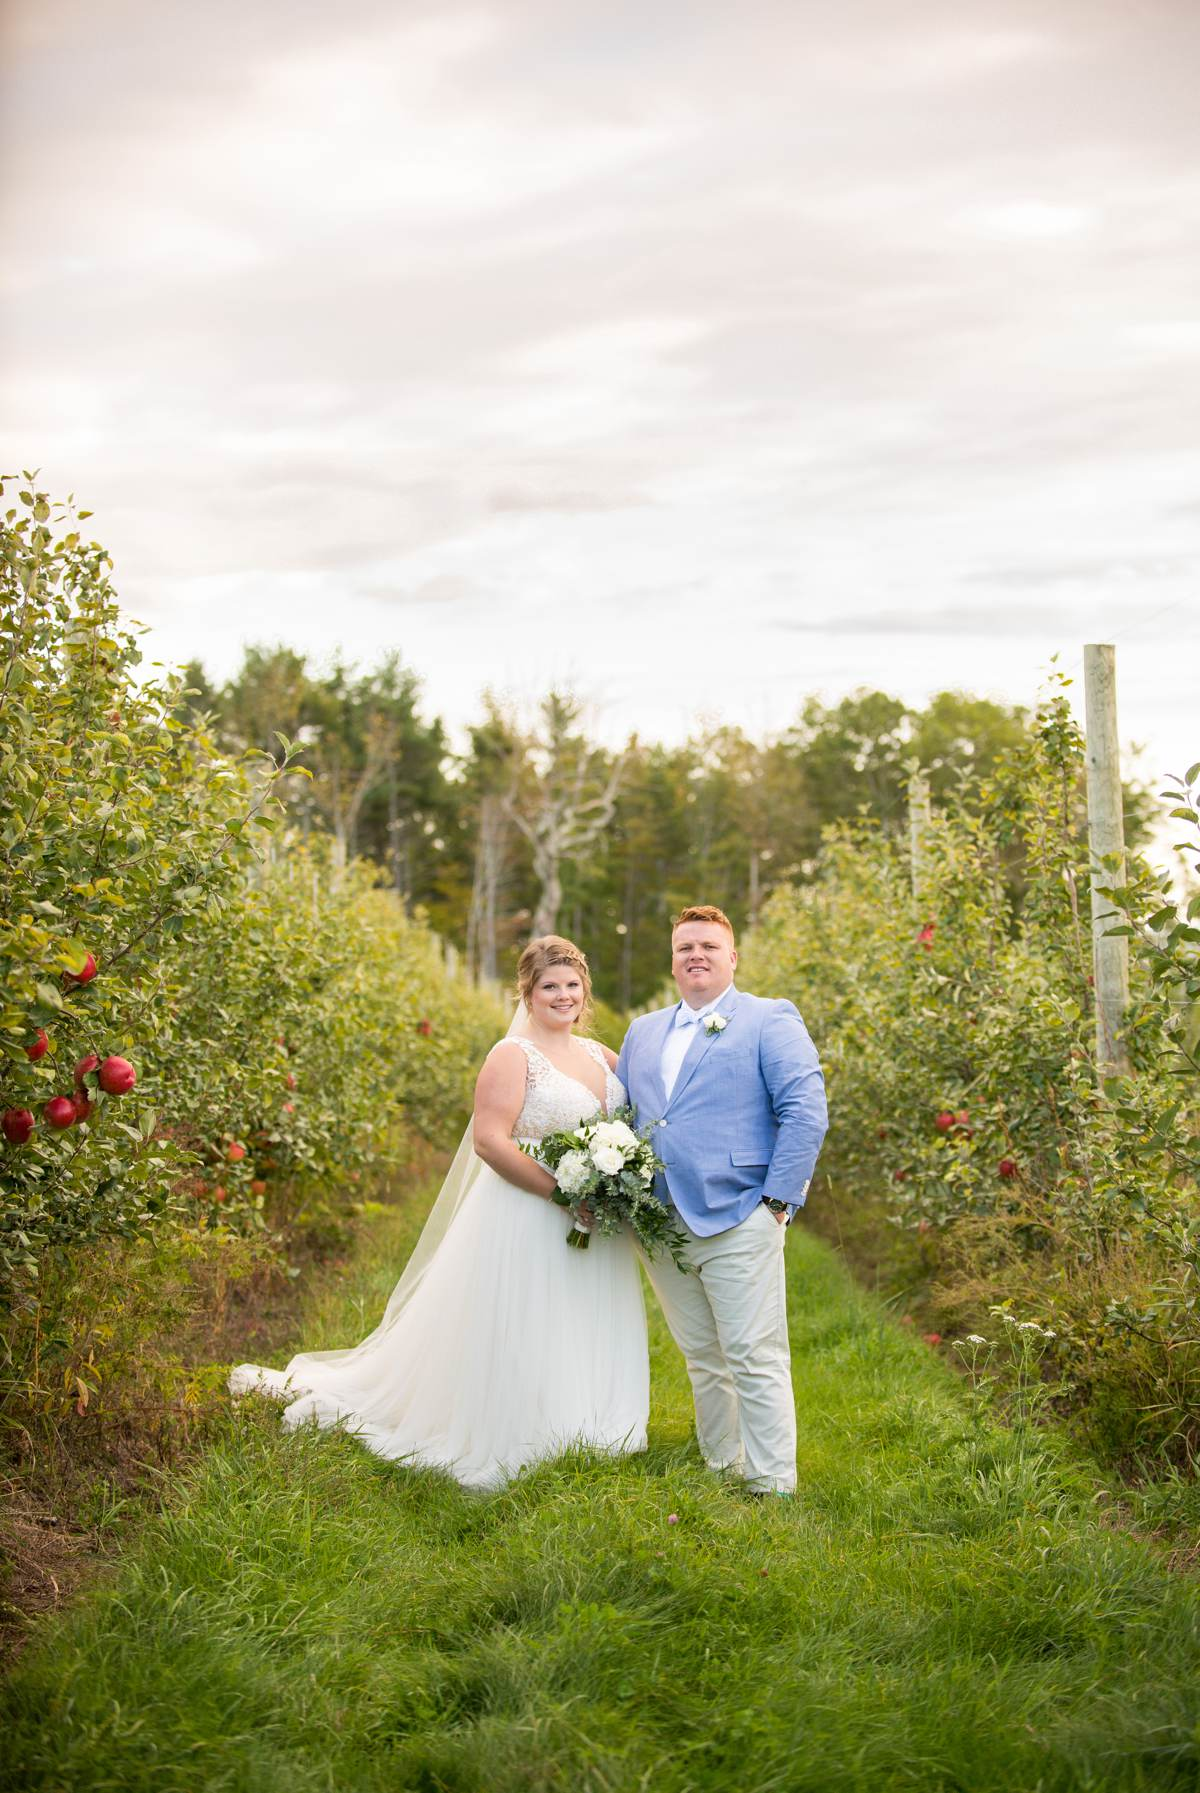 Bride and groom wedding photos in apple orchard